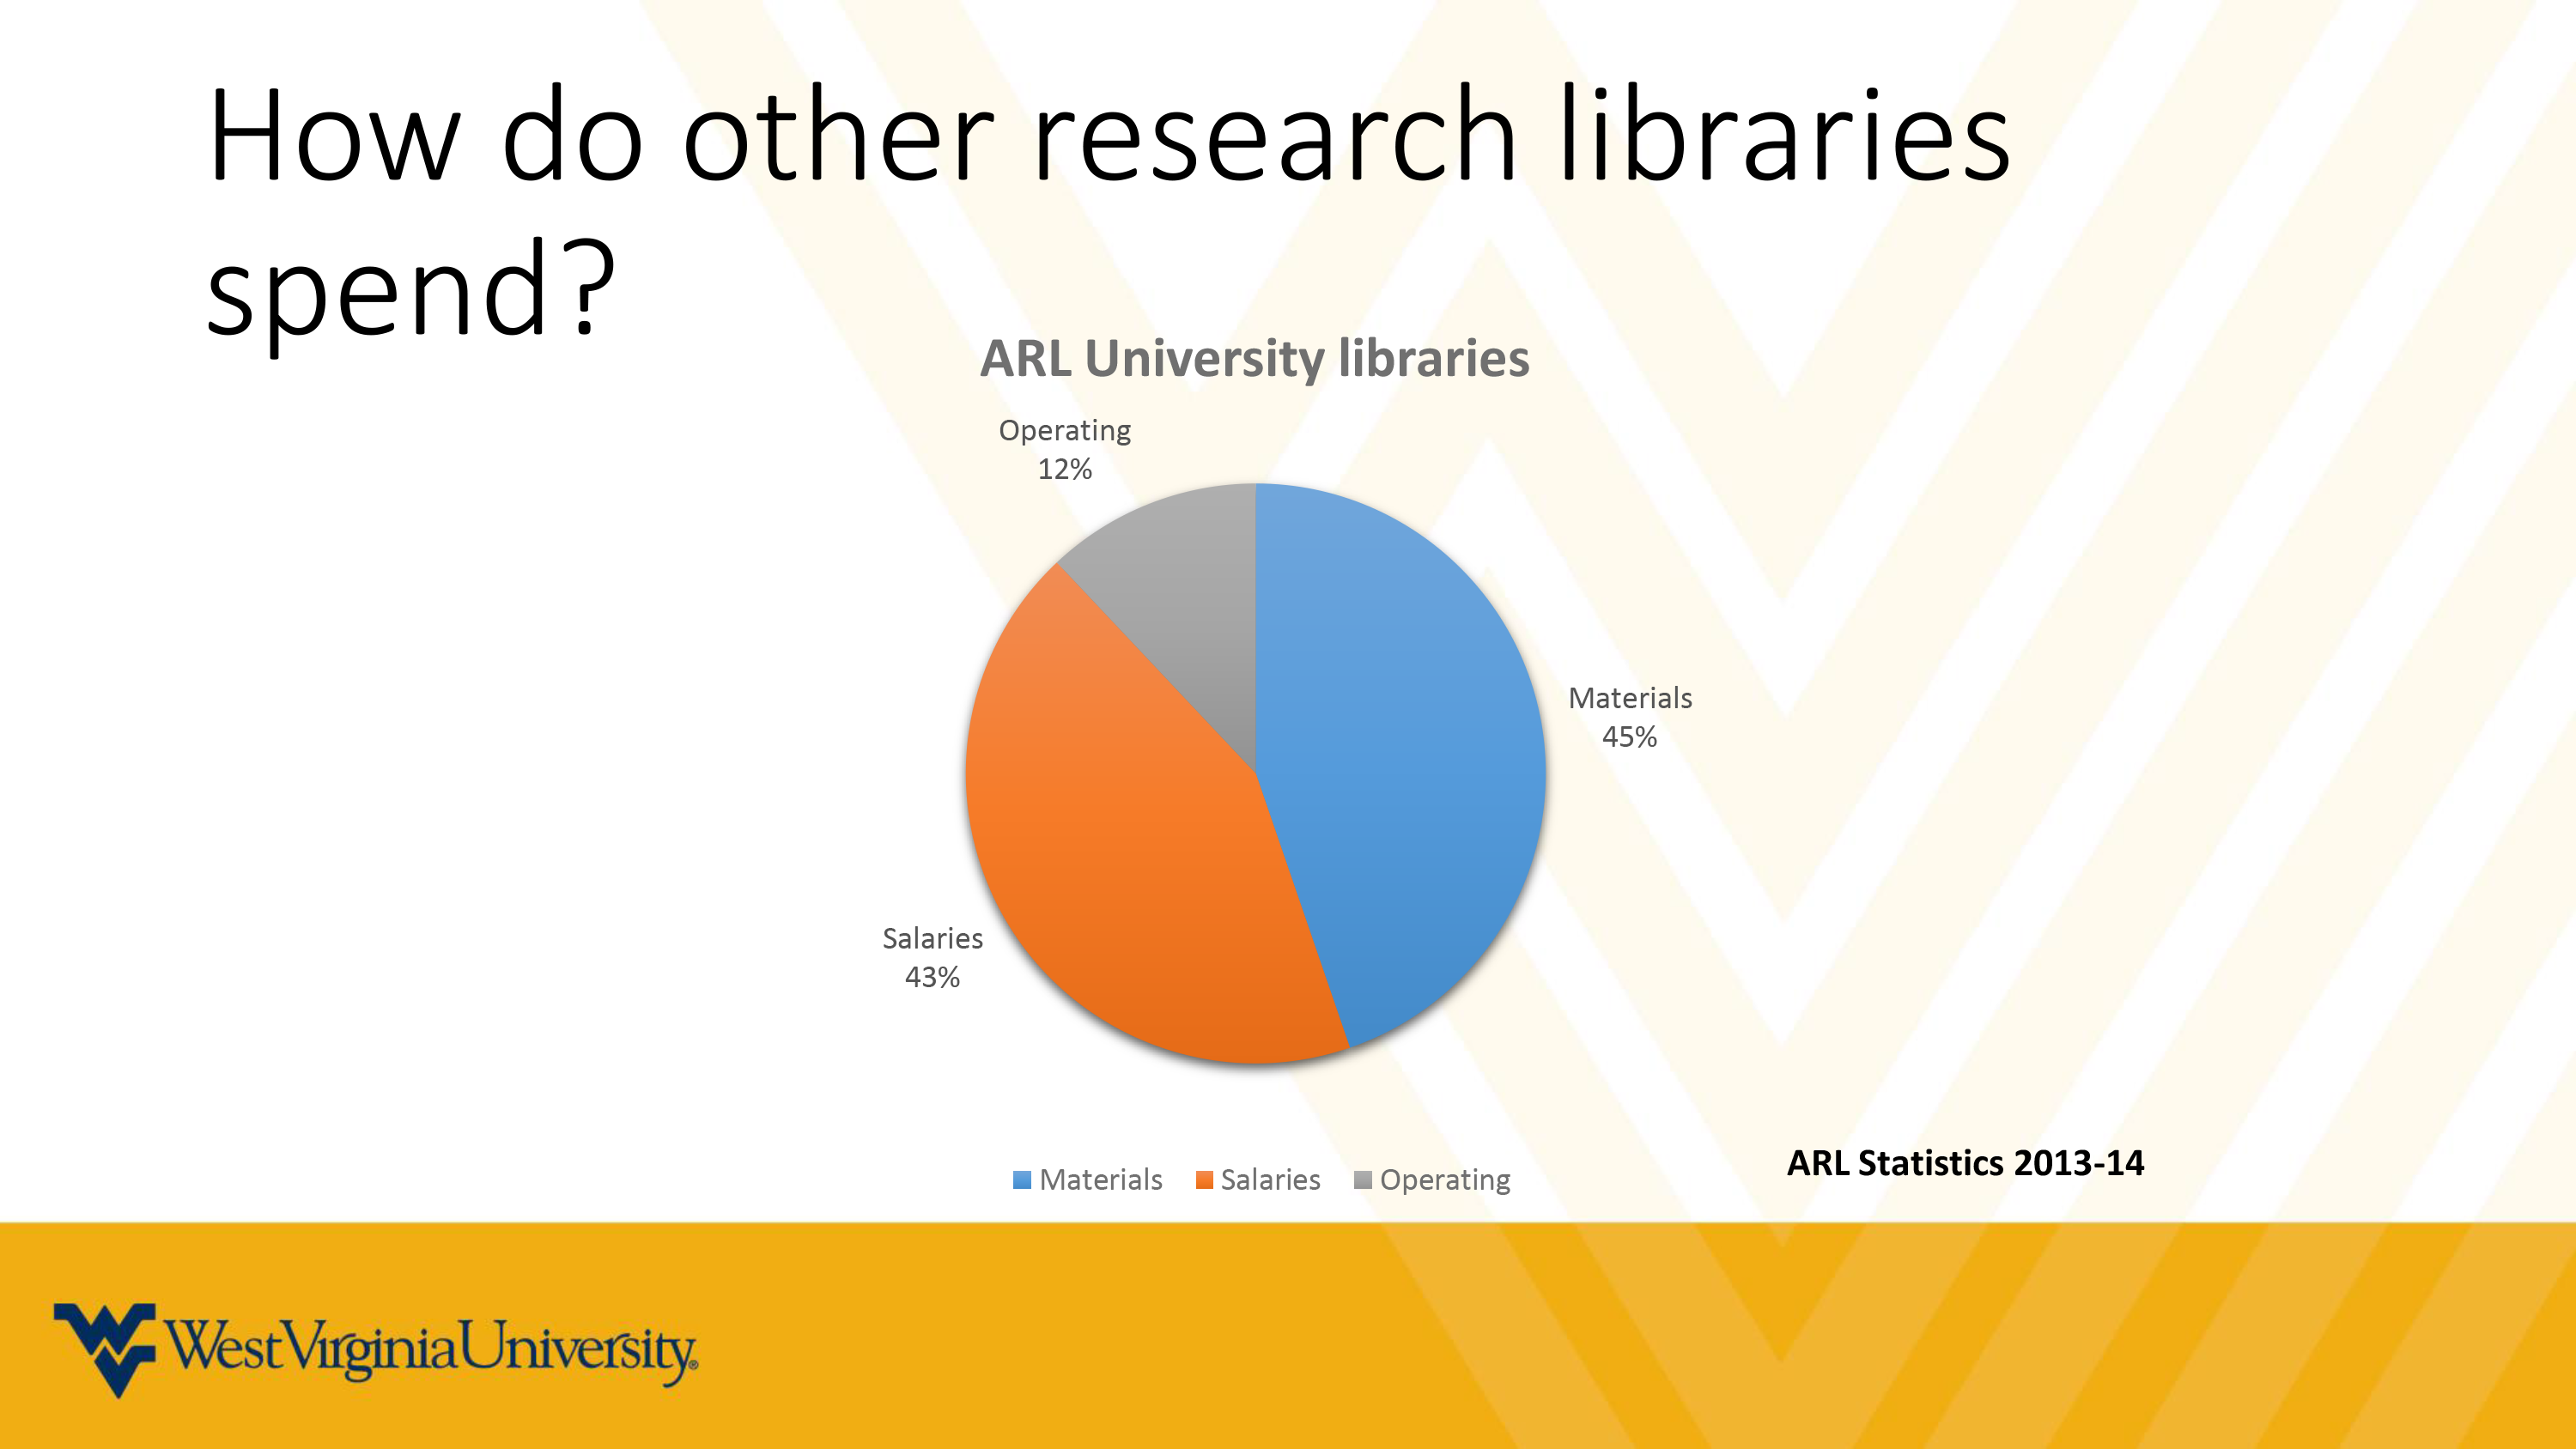 How other research libraries spend pie chart